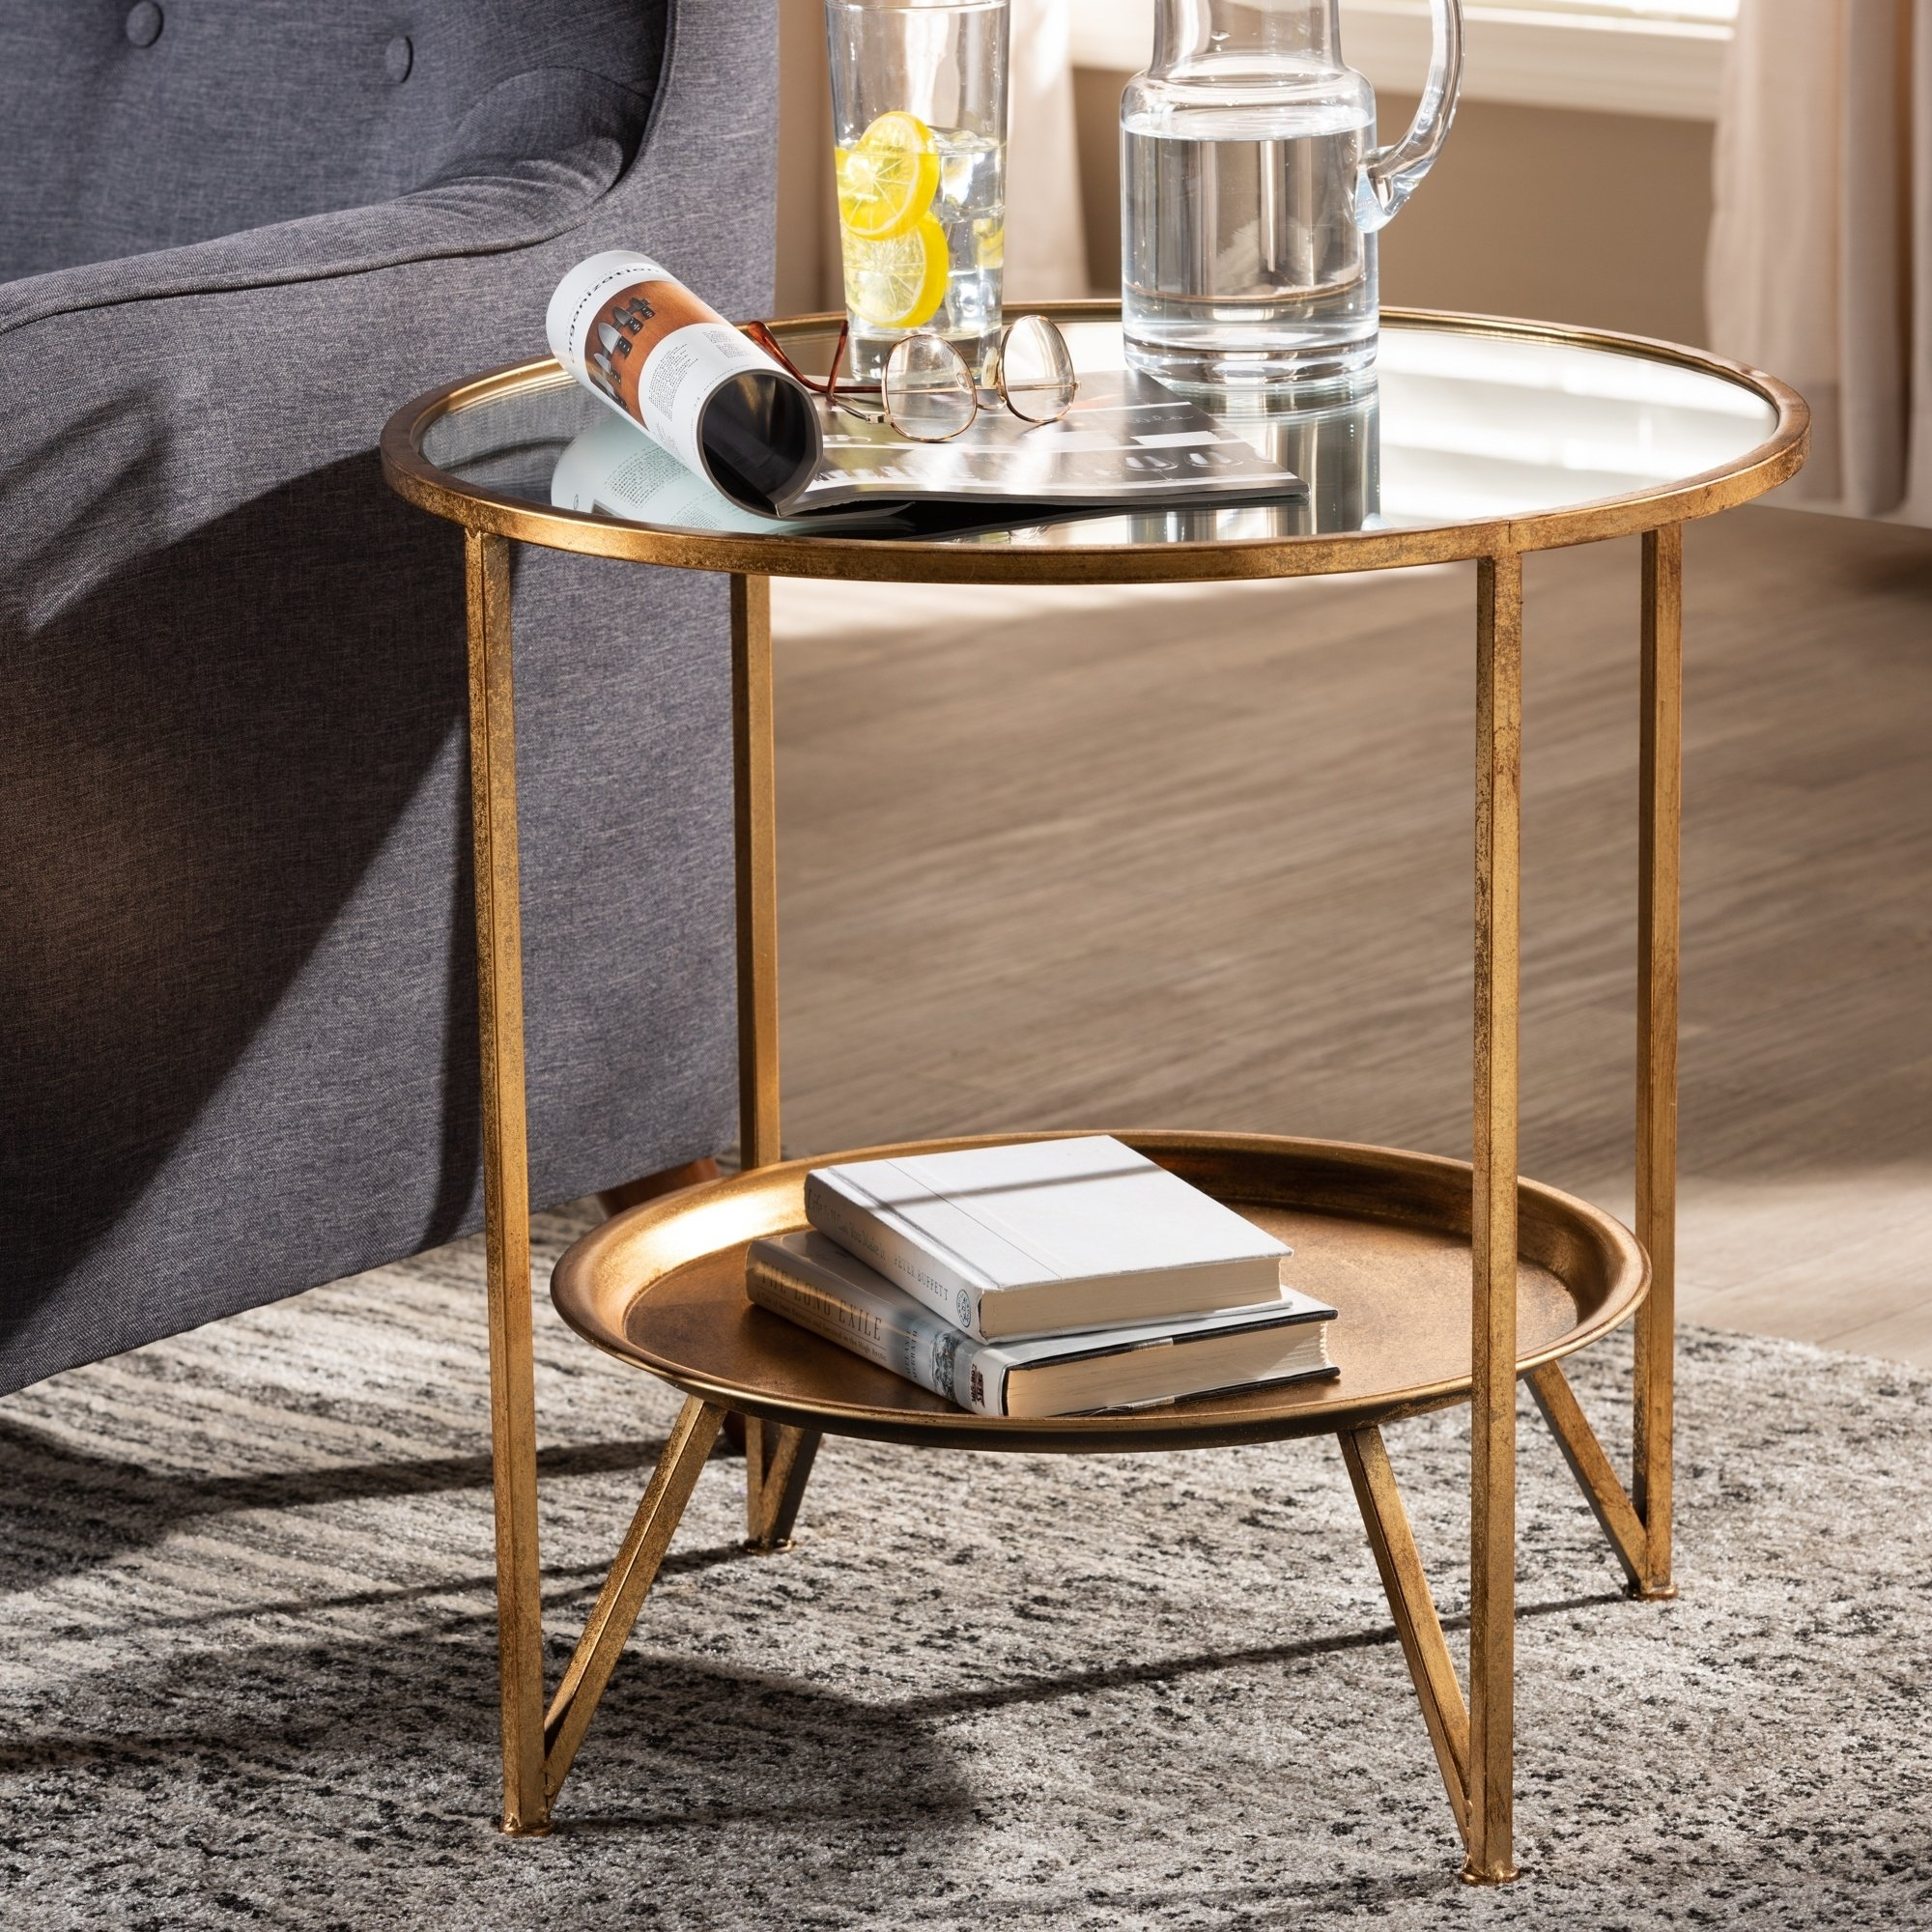 contemporary antique gold accent table free shipping today vintage mirror coffee black legs small square tablecloth with chairs under skinny runner grey cabinet cordless led